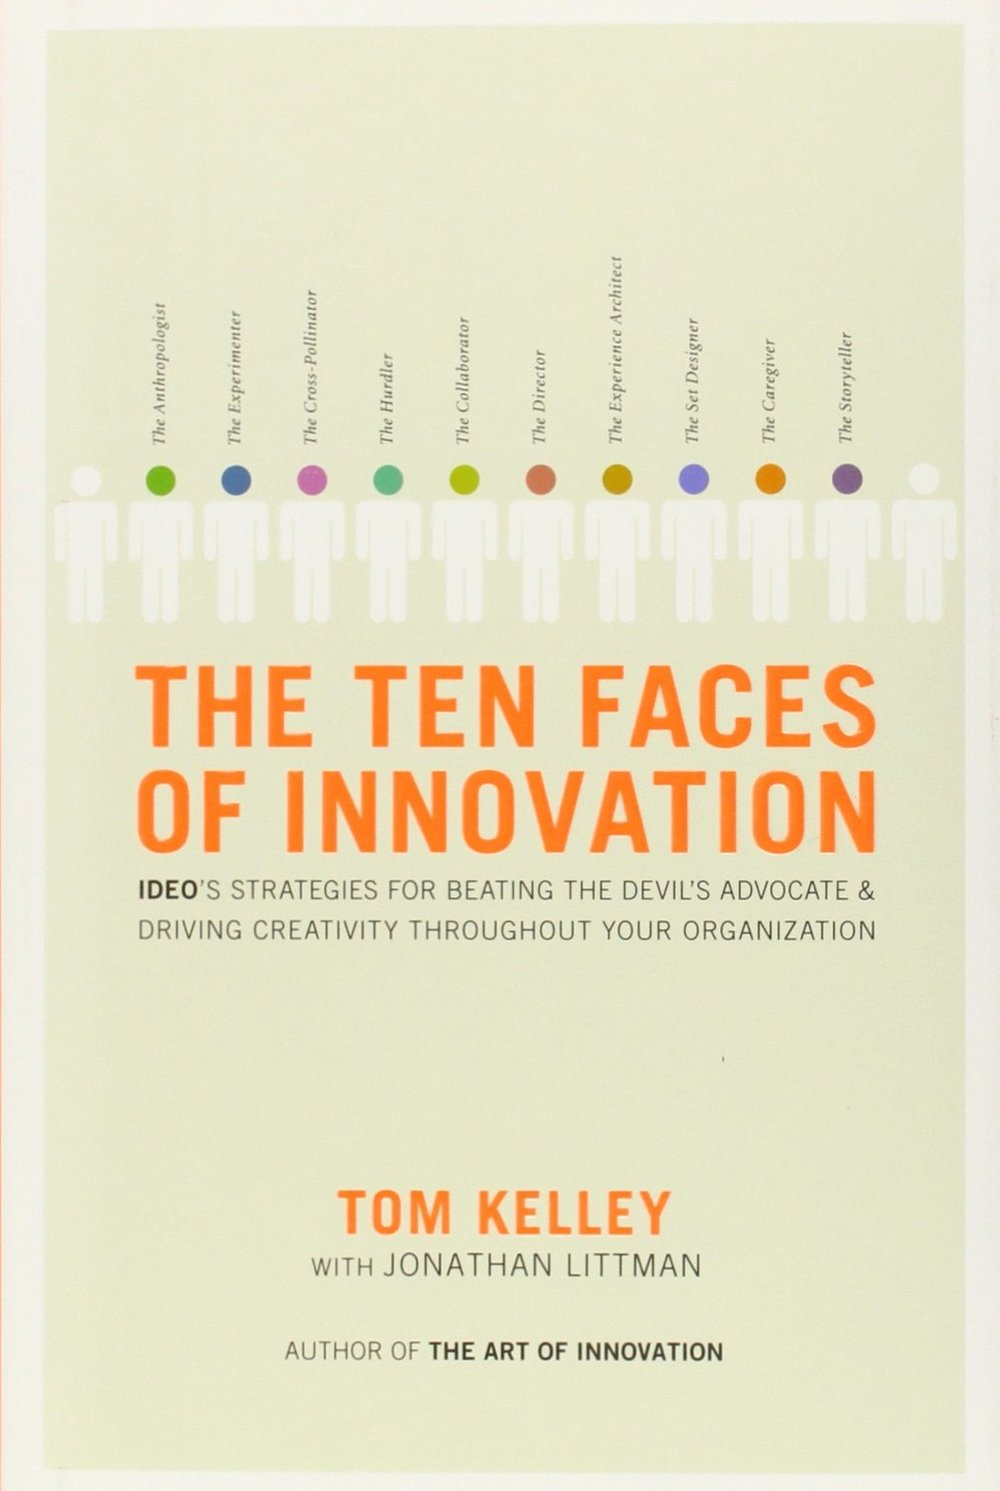 The-Ten-Faces-of-Innovation.jpg